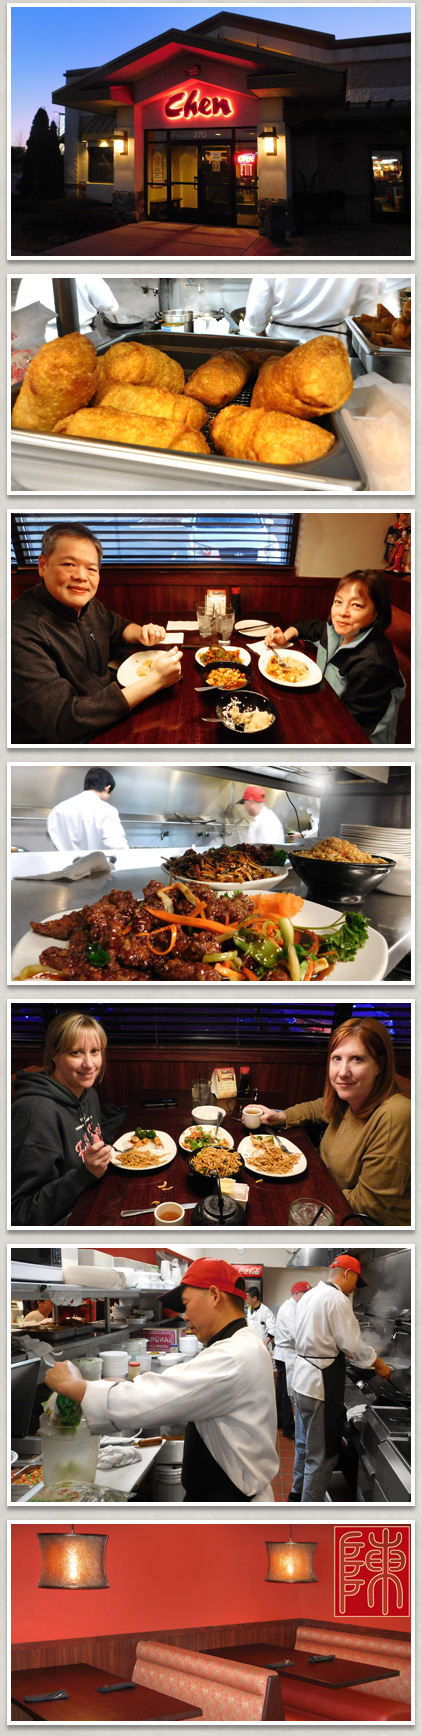 Chen Chinese Cuisine in Lake In The Hills photos part 2